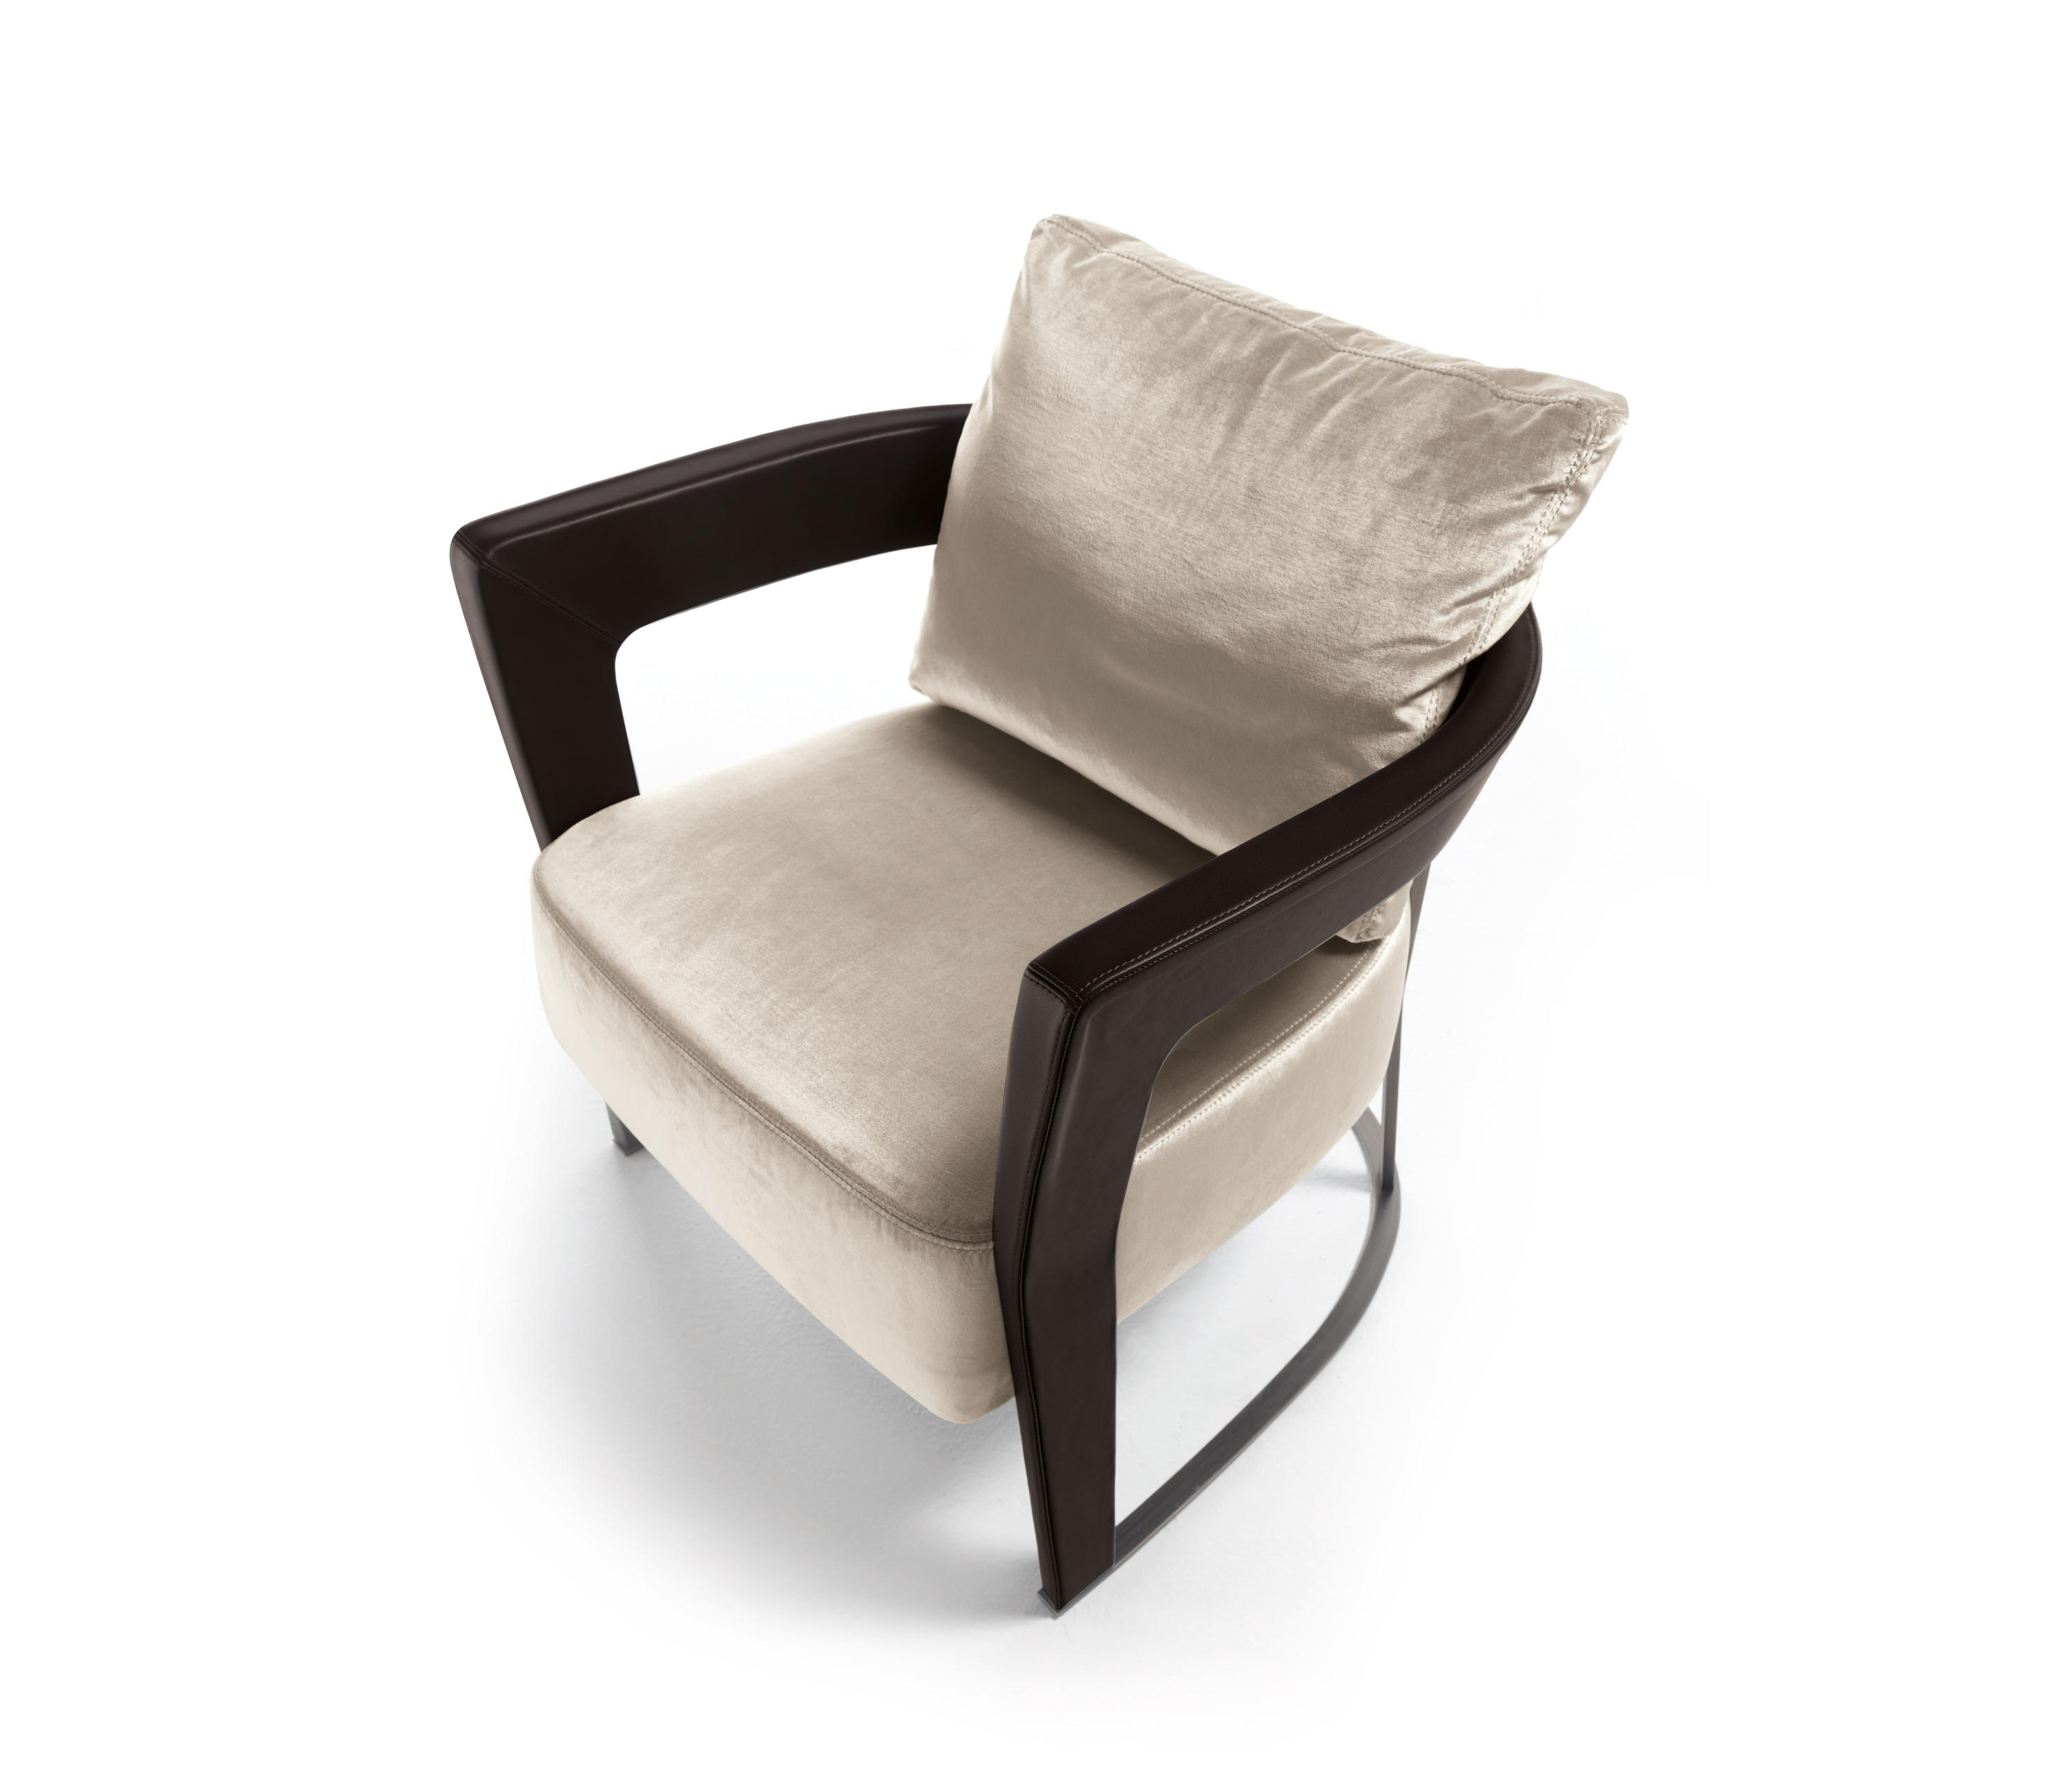 AGATHA Lounge chairs from Longhi S p a